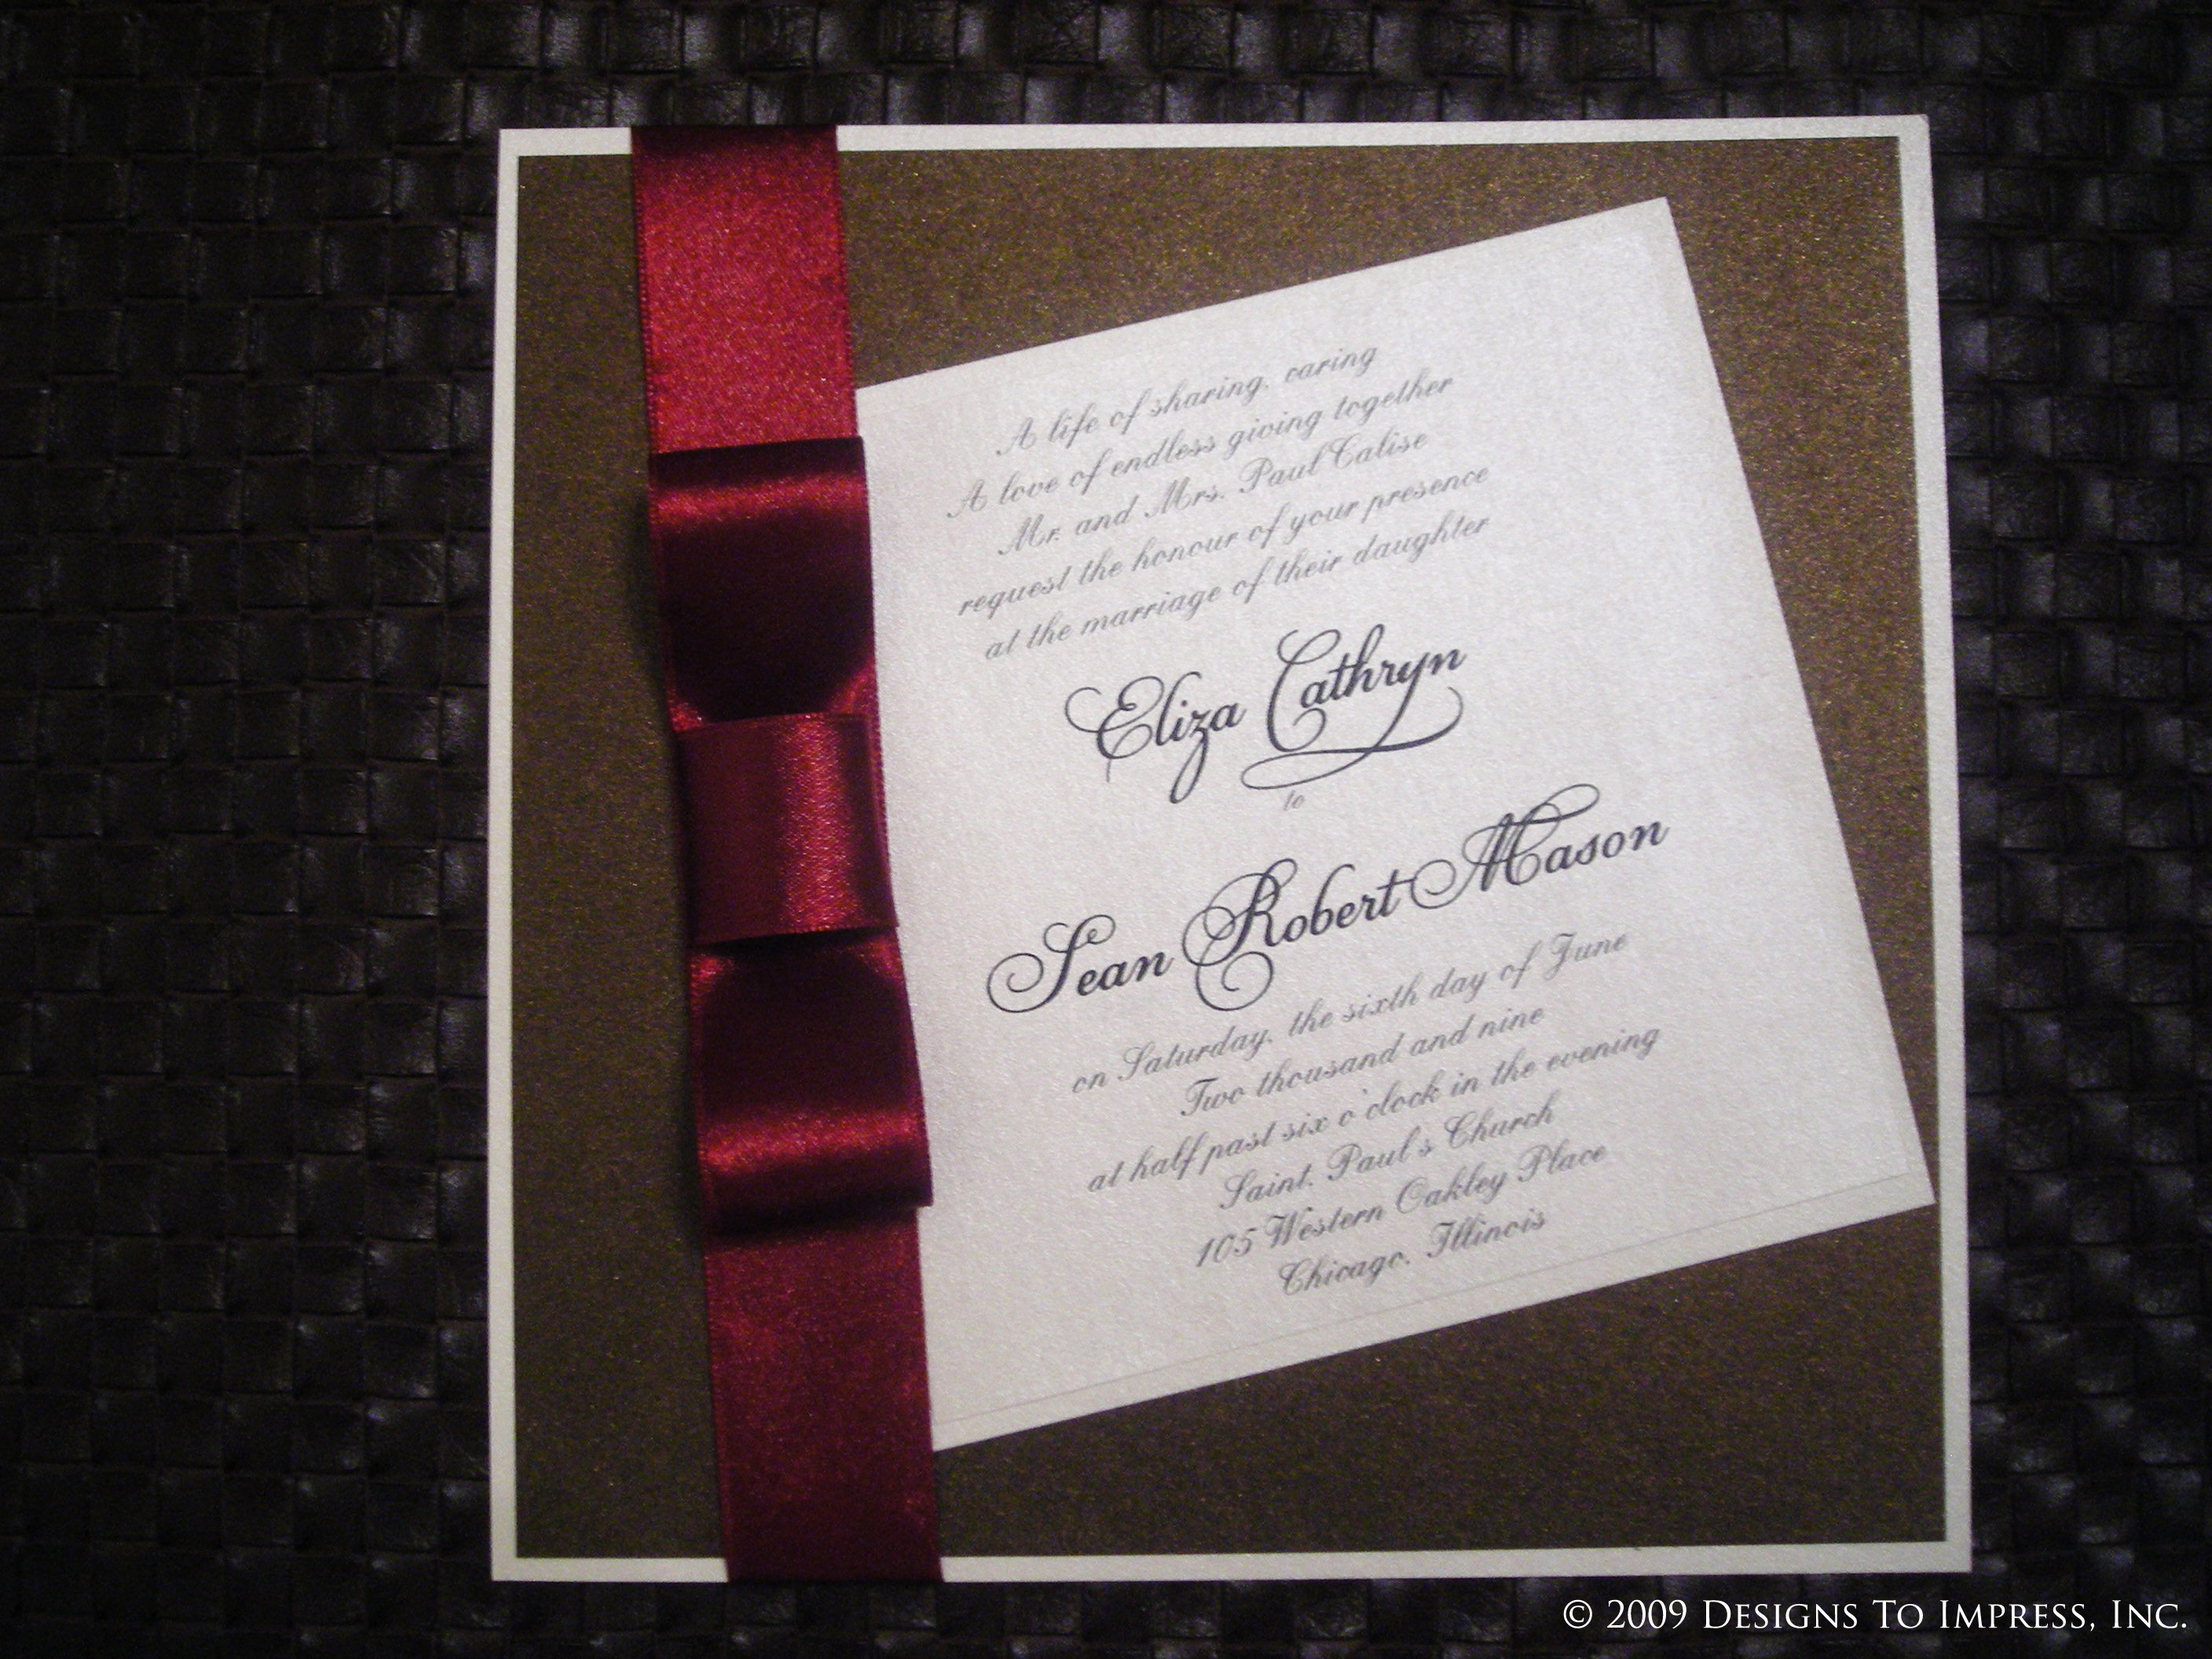 Stationery, red, Square, Classic Wedding Invitations, Invitations, Wedding, Chocolate, Unique, inc, Ribbon, Shimmer, Layered, Designs to impress